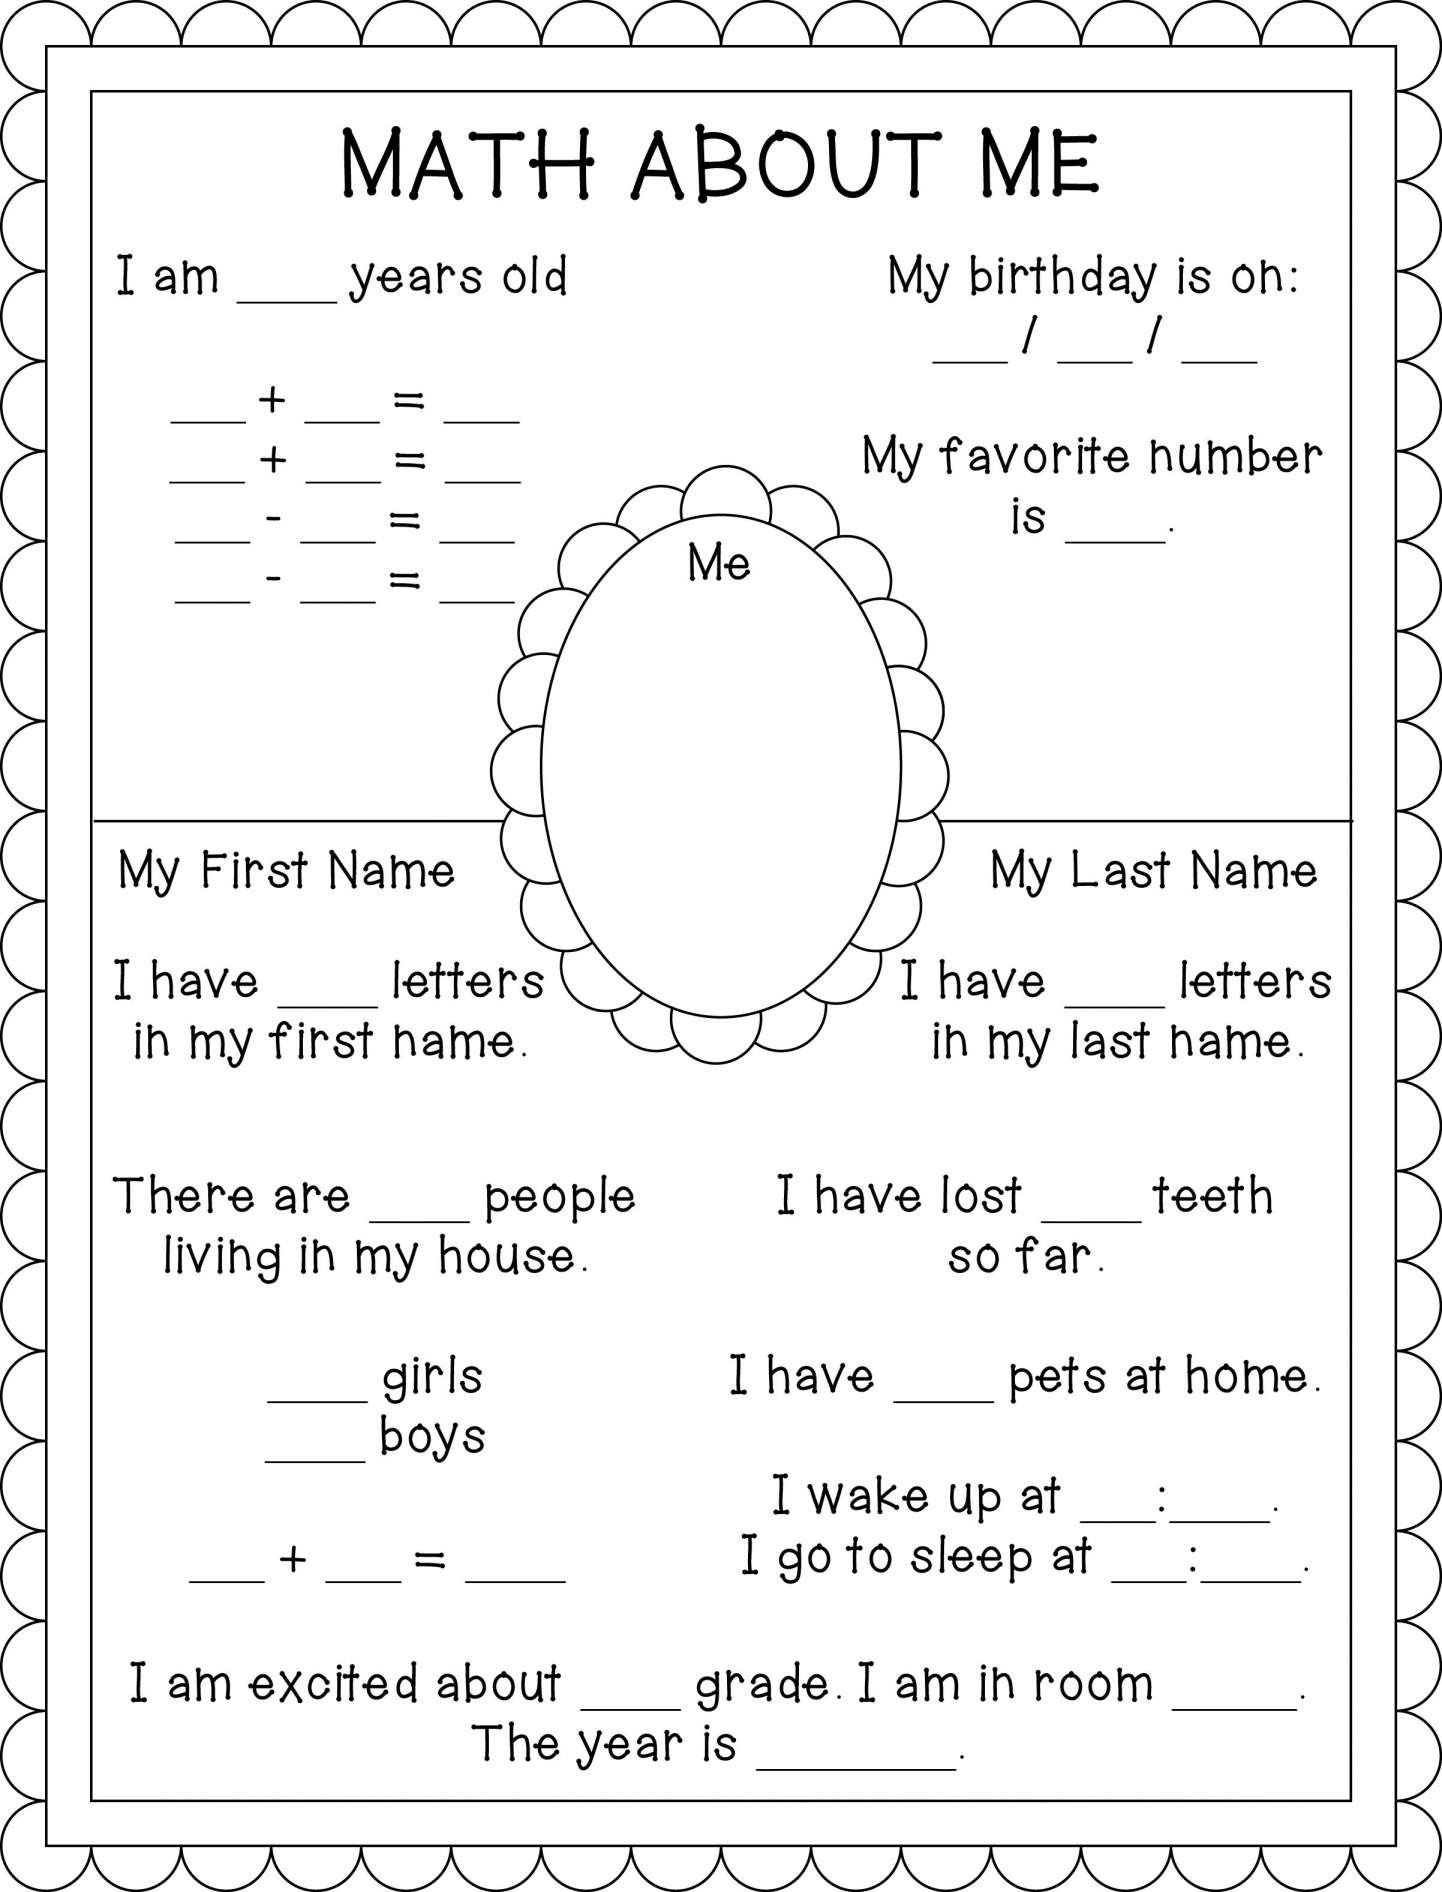 Ou Ow Worksheets 2nd Grade Ou and Ow Worksheets for 2nd Grade